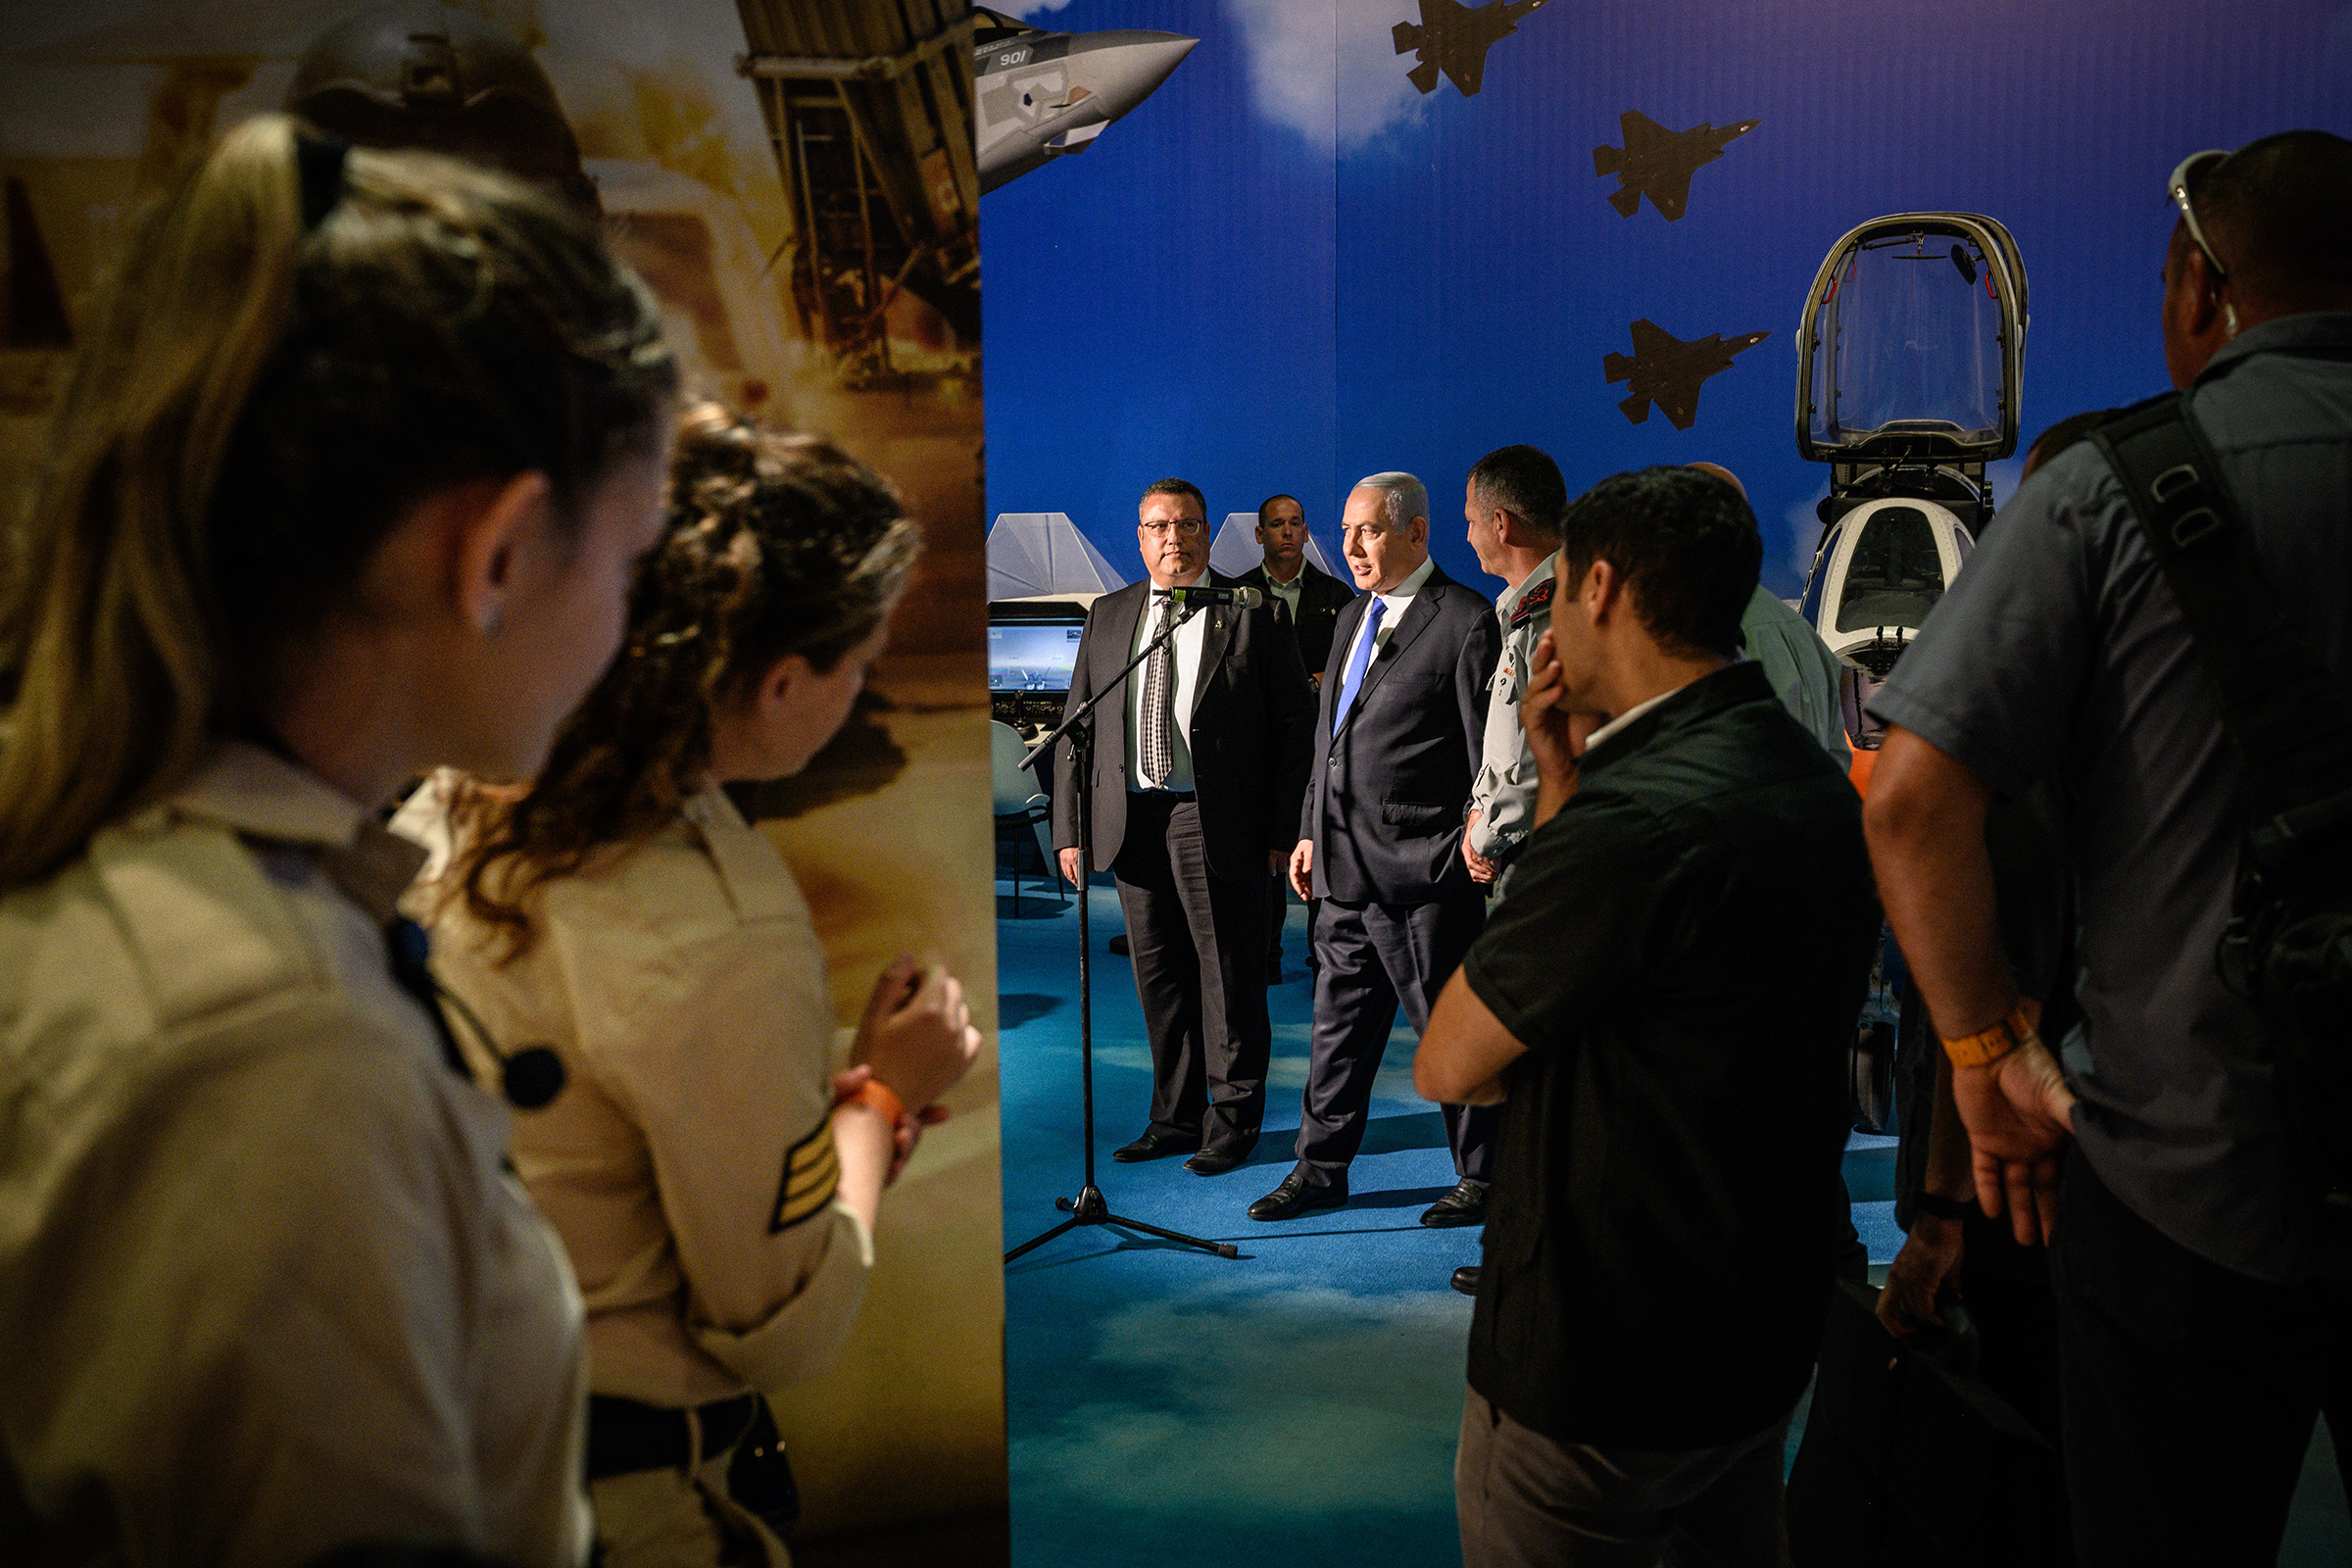 Israeli Prime Minister Benjamin Netanyahu opens an exhibit on the Israel Defense Forces, a driver behind the nation's booming tech sector, in Jerusalem on June 25. July 22 issue.